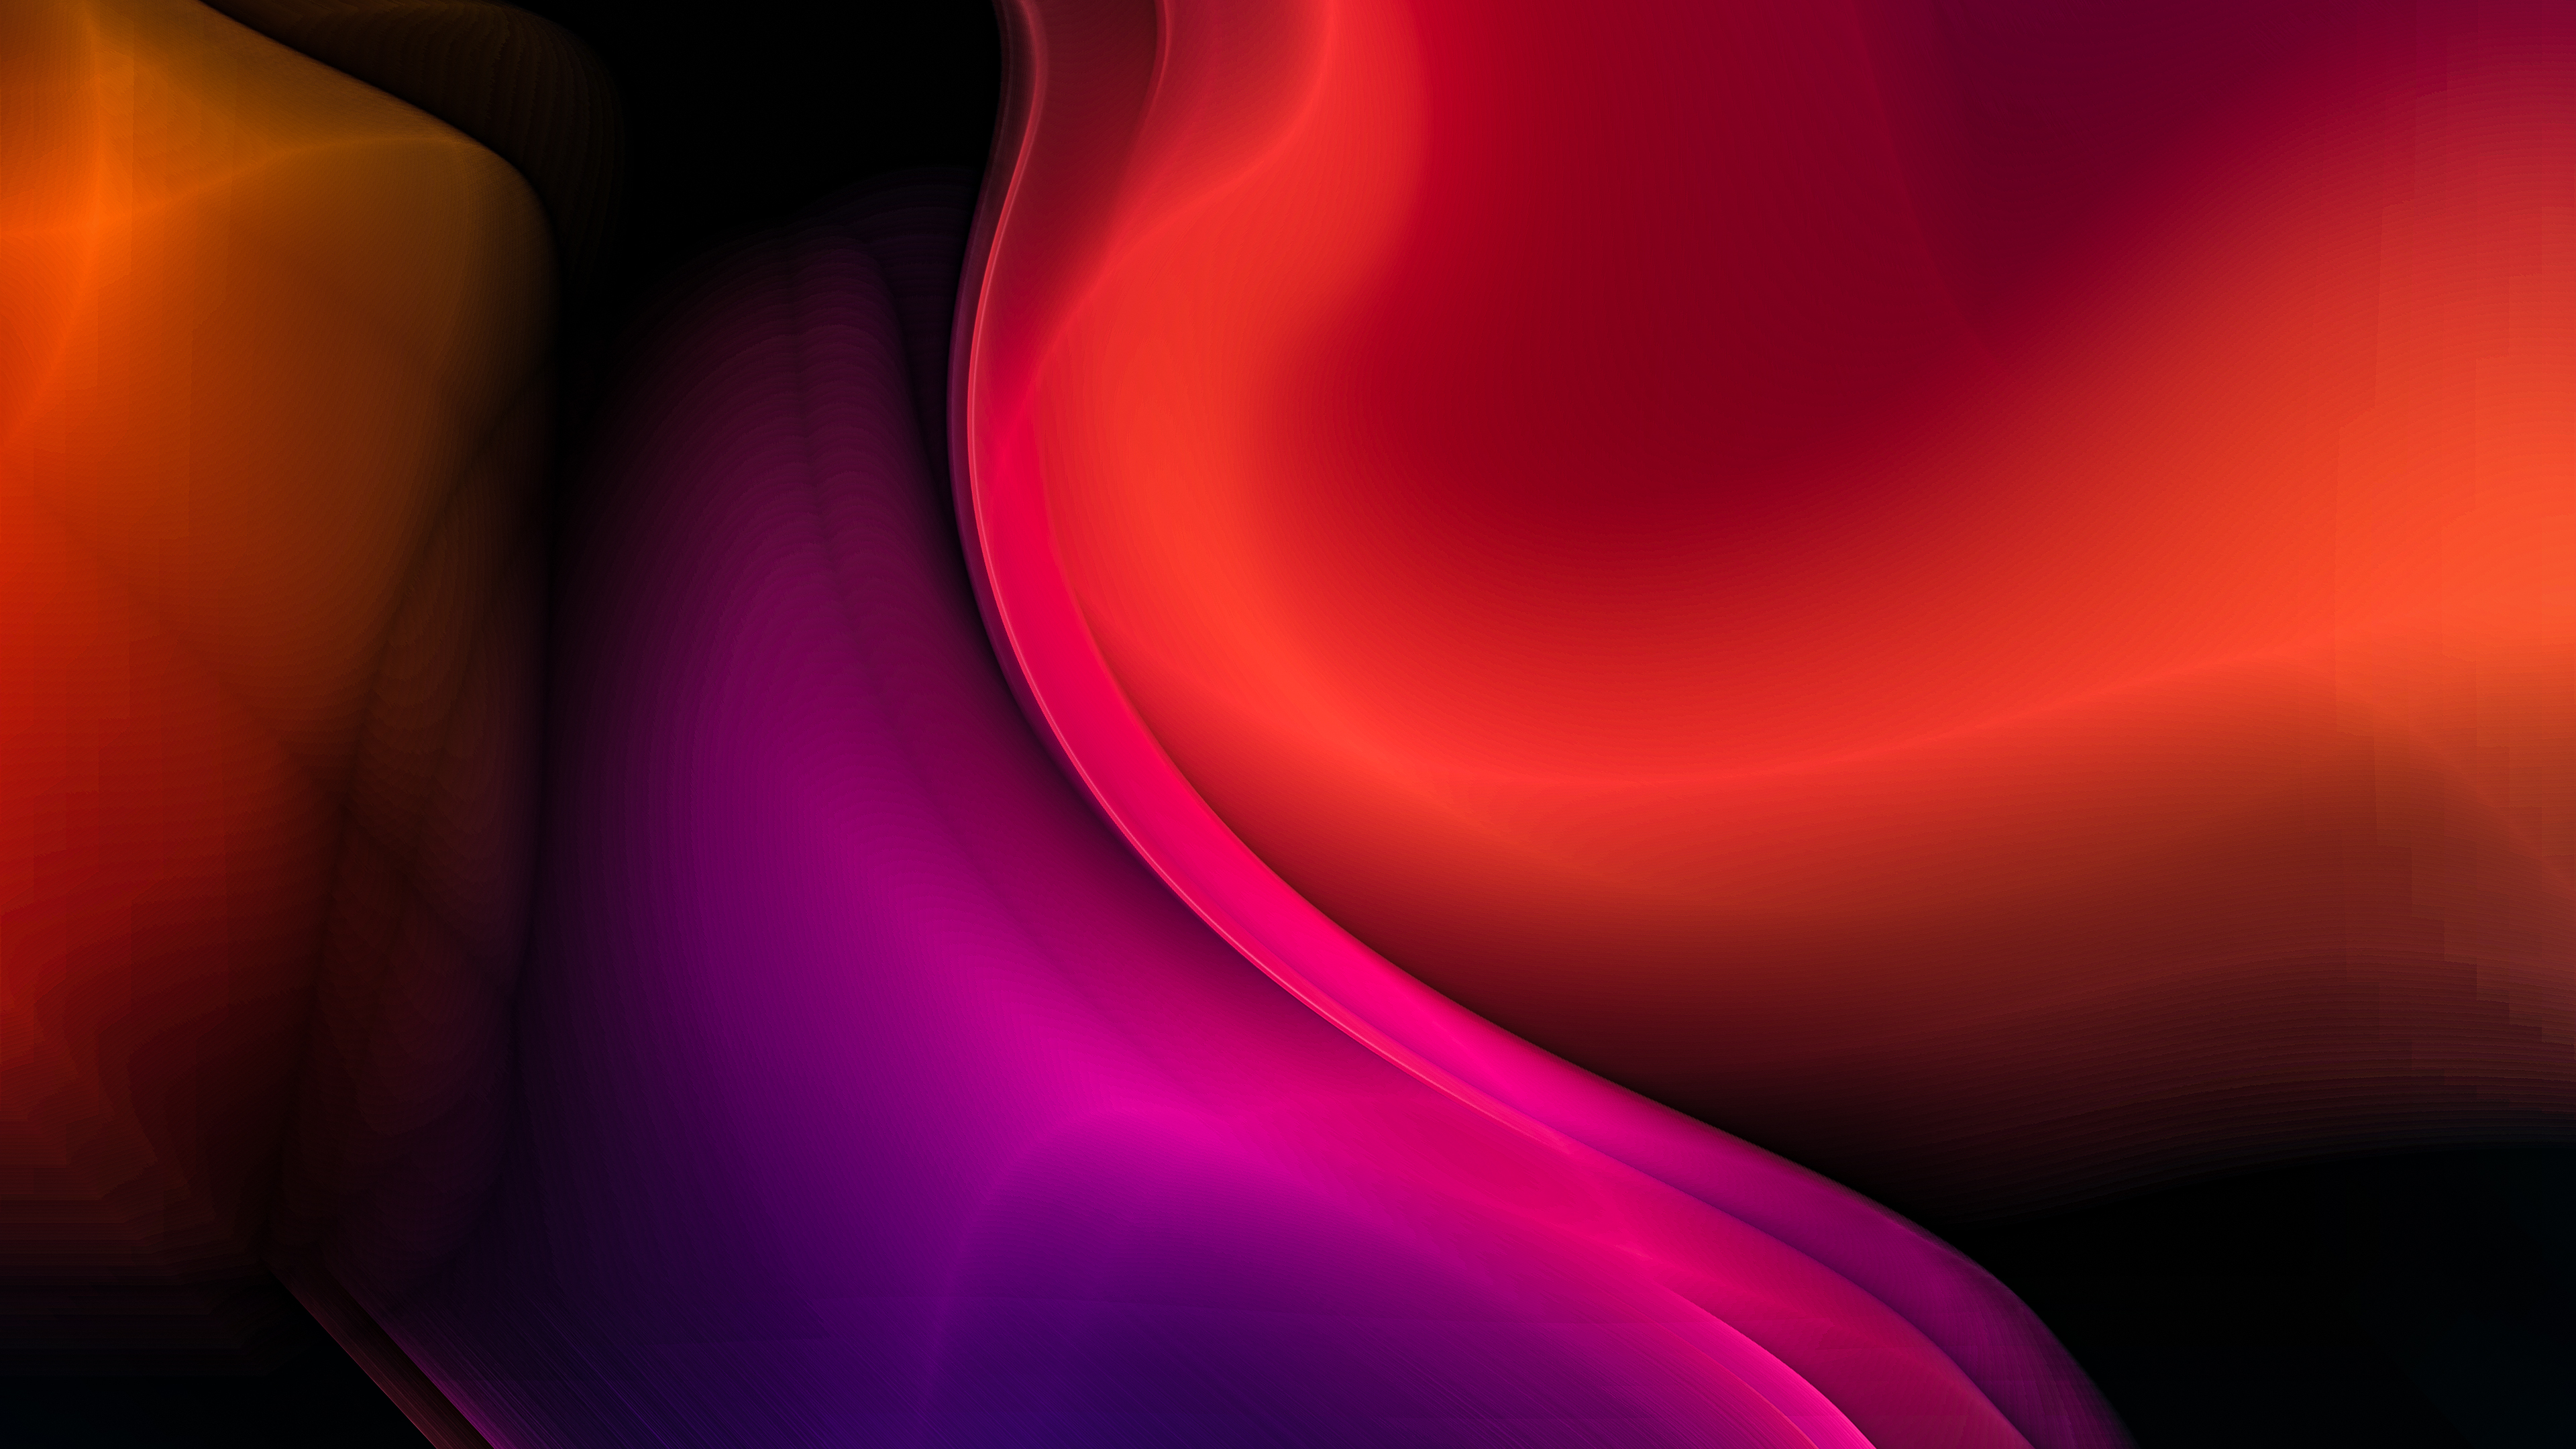 red abstract gradient 1570395024 - Red Abstract Gradient - hd-wallpapers, gradient wallpapers, digital art wallpapers, abstract wallpapers, 4k-wallpapers